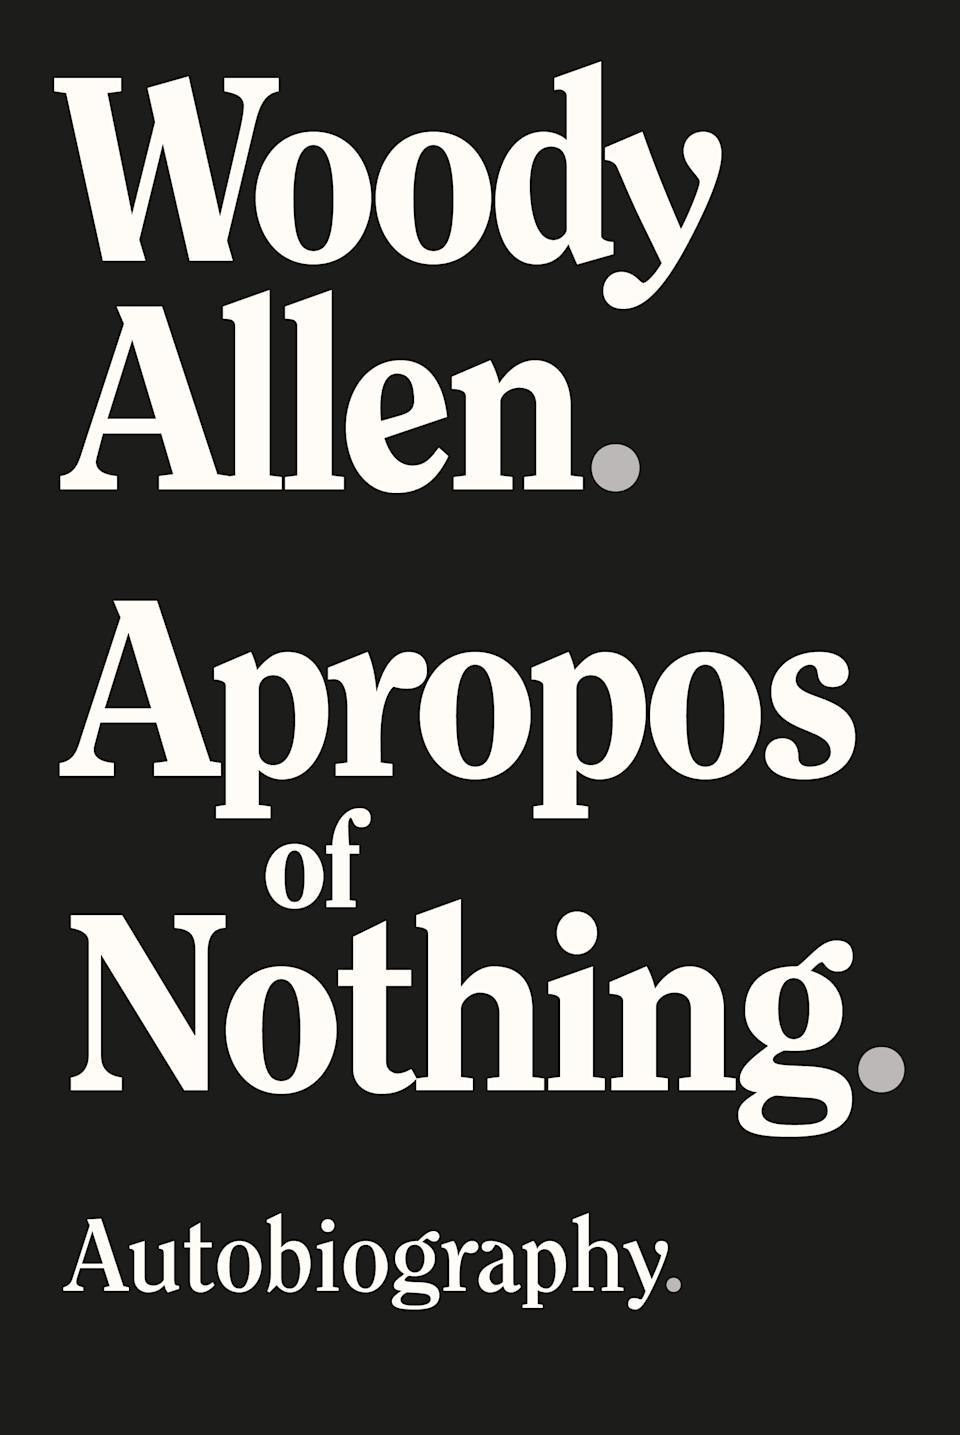 """Woody Allen's autobiography, """"Apropos of Nothing,"""" has been released after all. (Photo: Courtesy of Skyhorse Publishing)"""